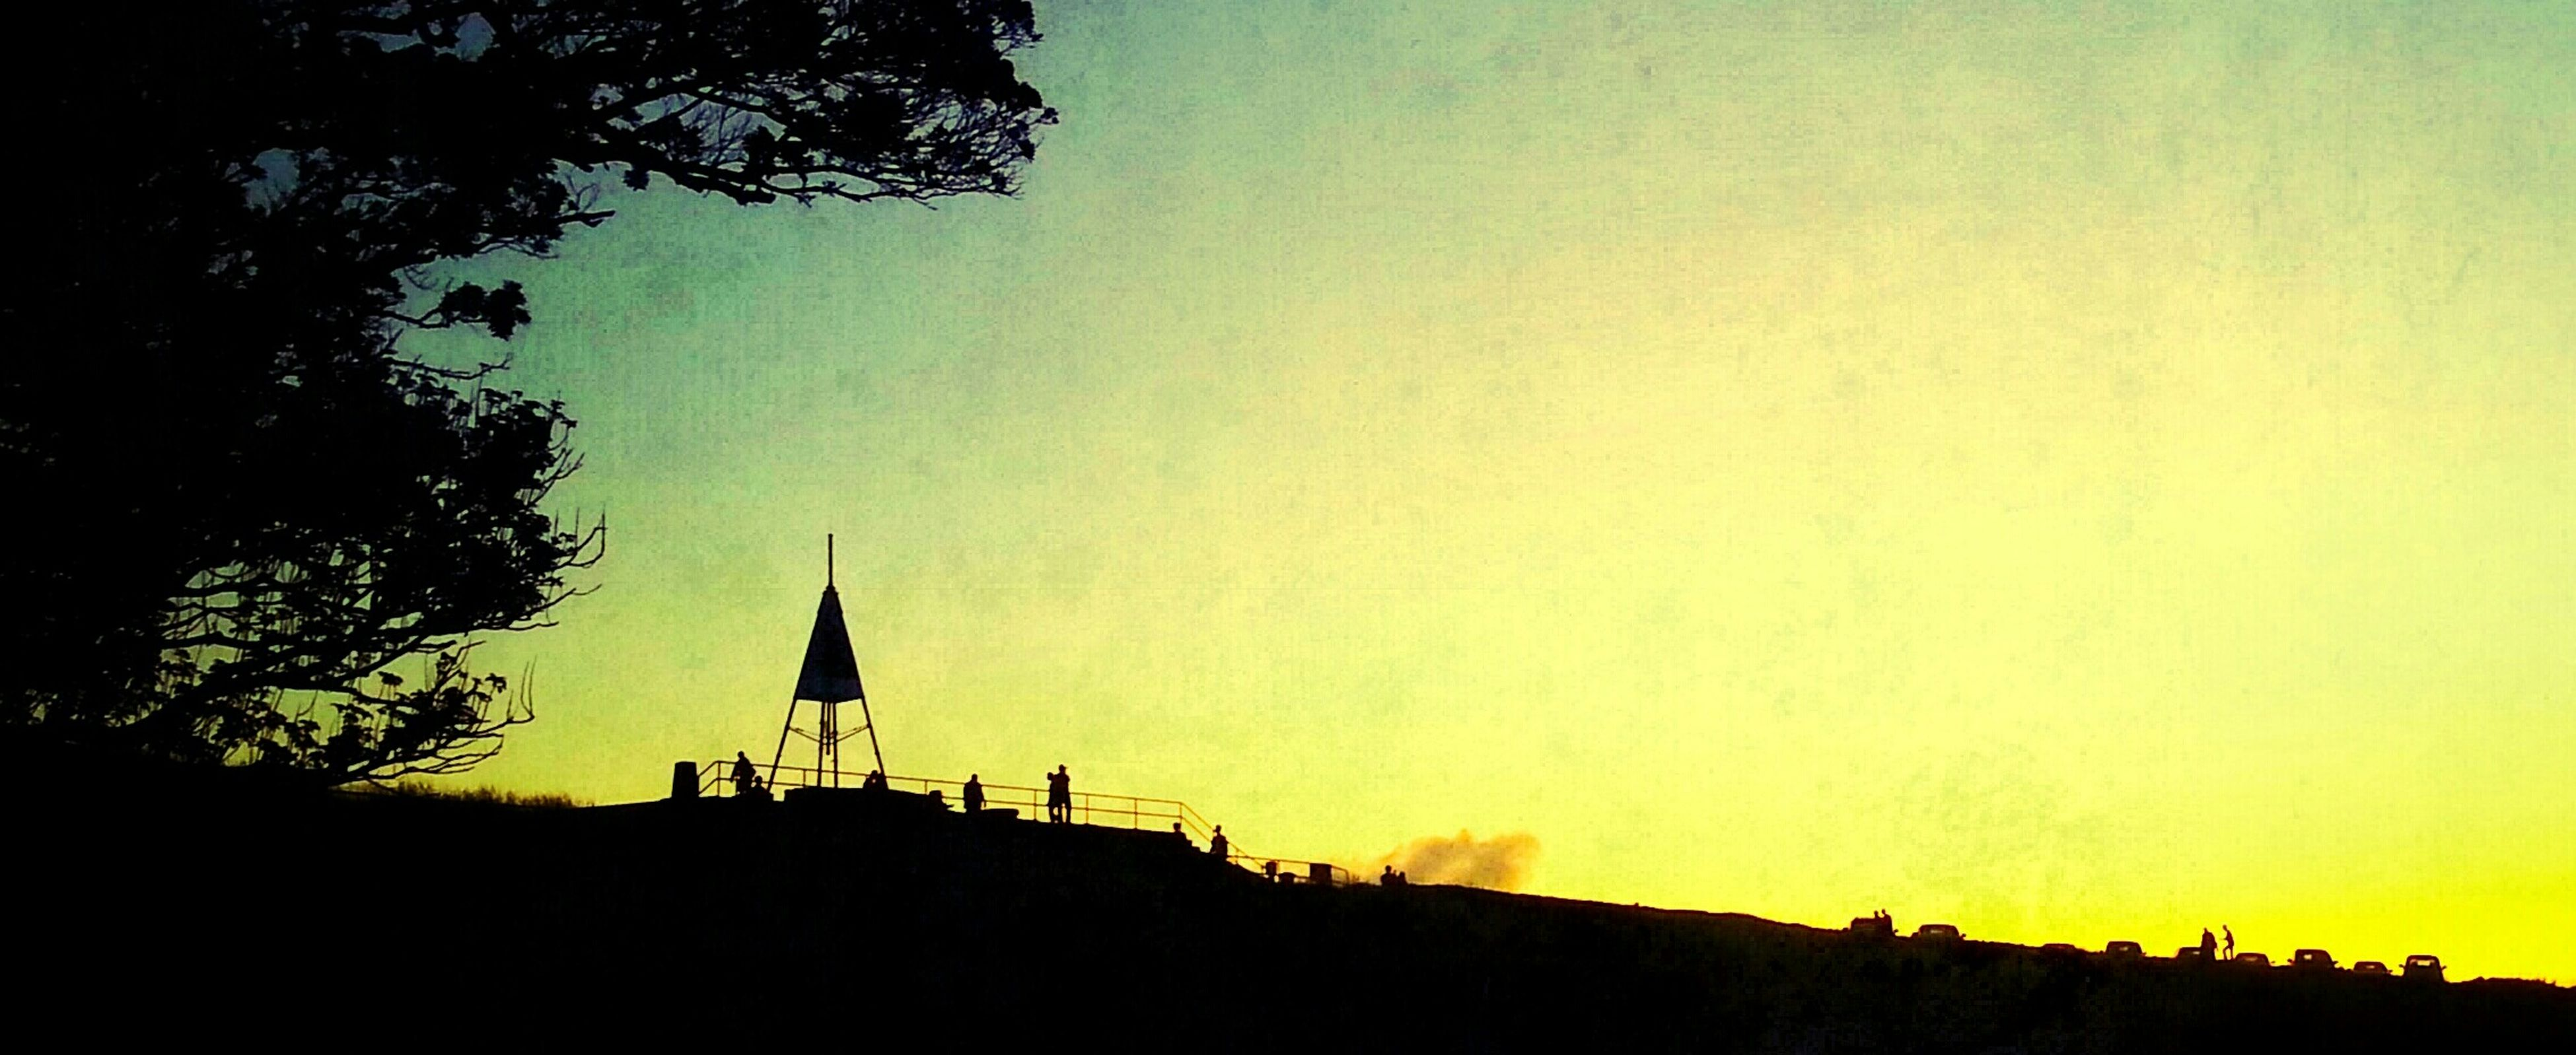 silhouette, sunset, copy space, clear sky, tree, built structure, building exterior, architecture, orange color, beauty in nature, nature, scenics, tranquility, dusk, sky, tranquil scene, low angle view, outdoors, landscape, no people